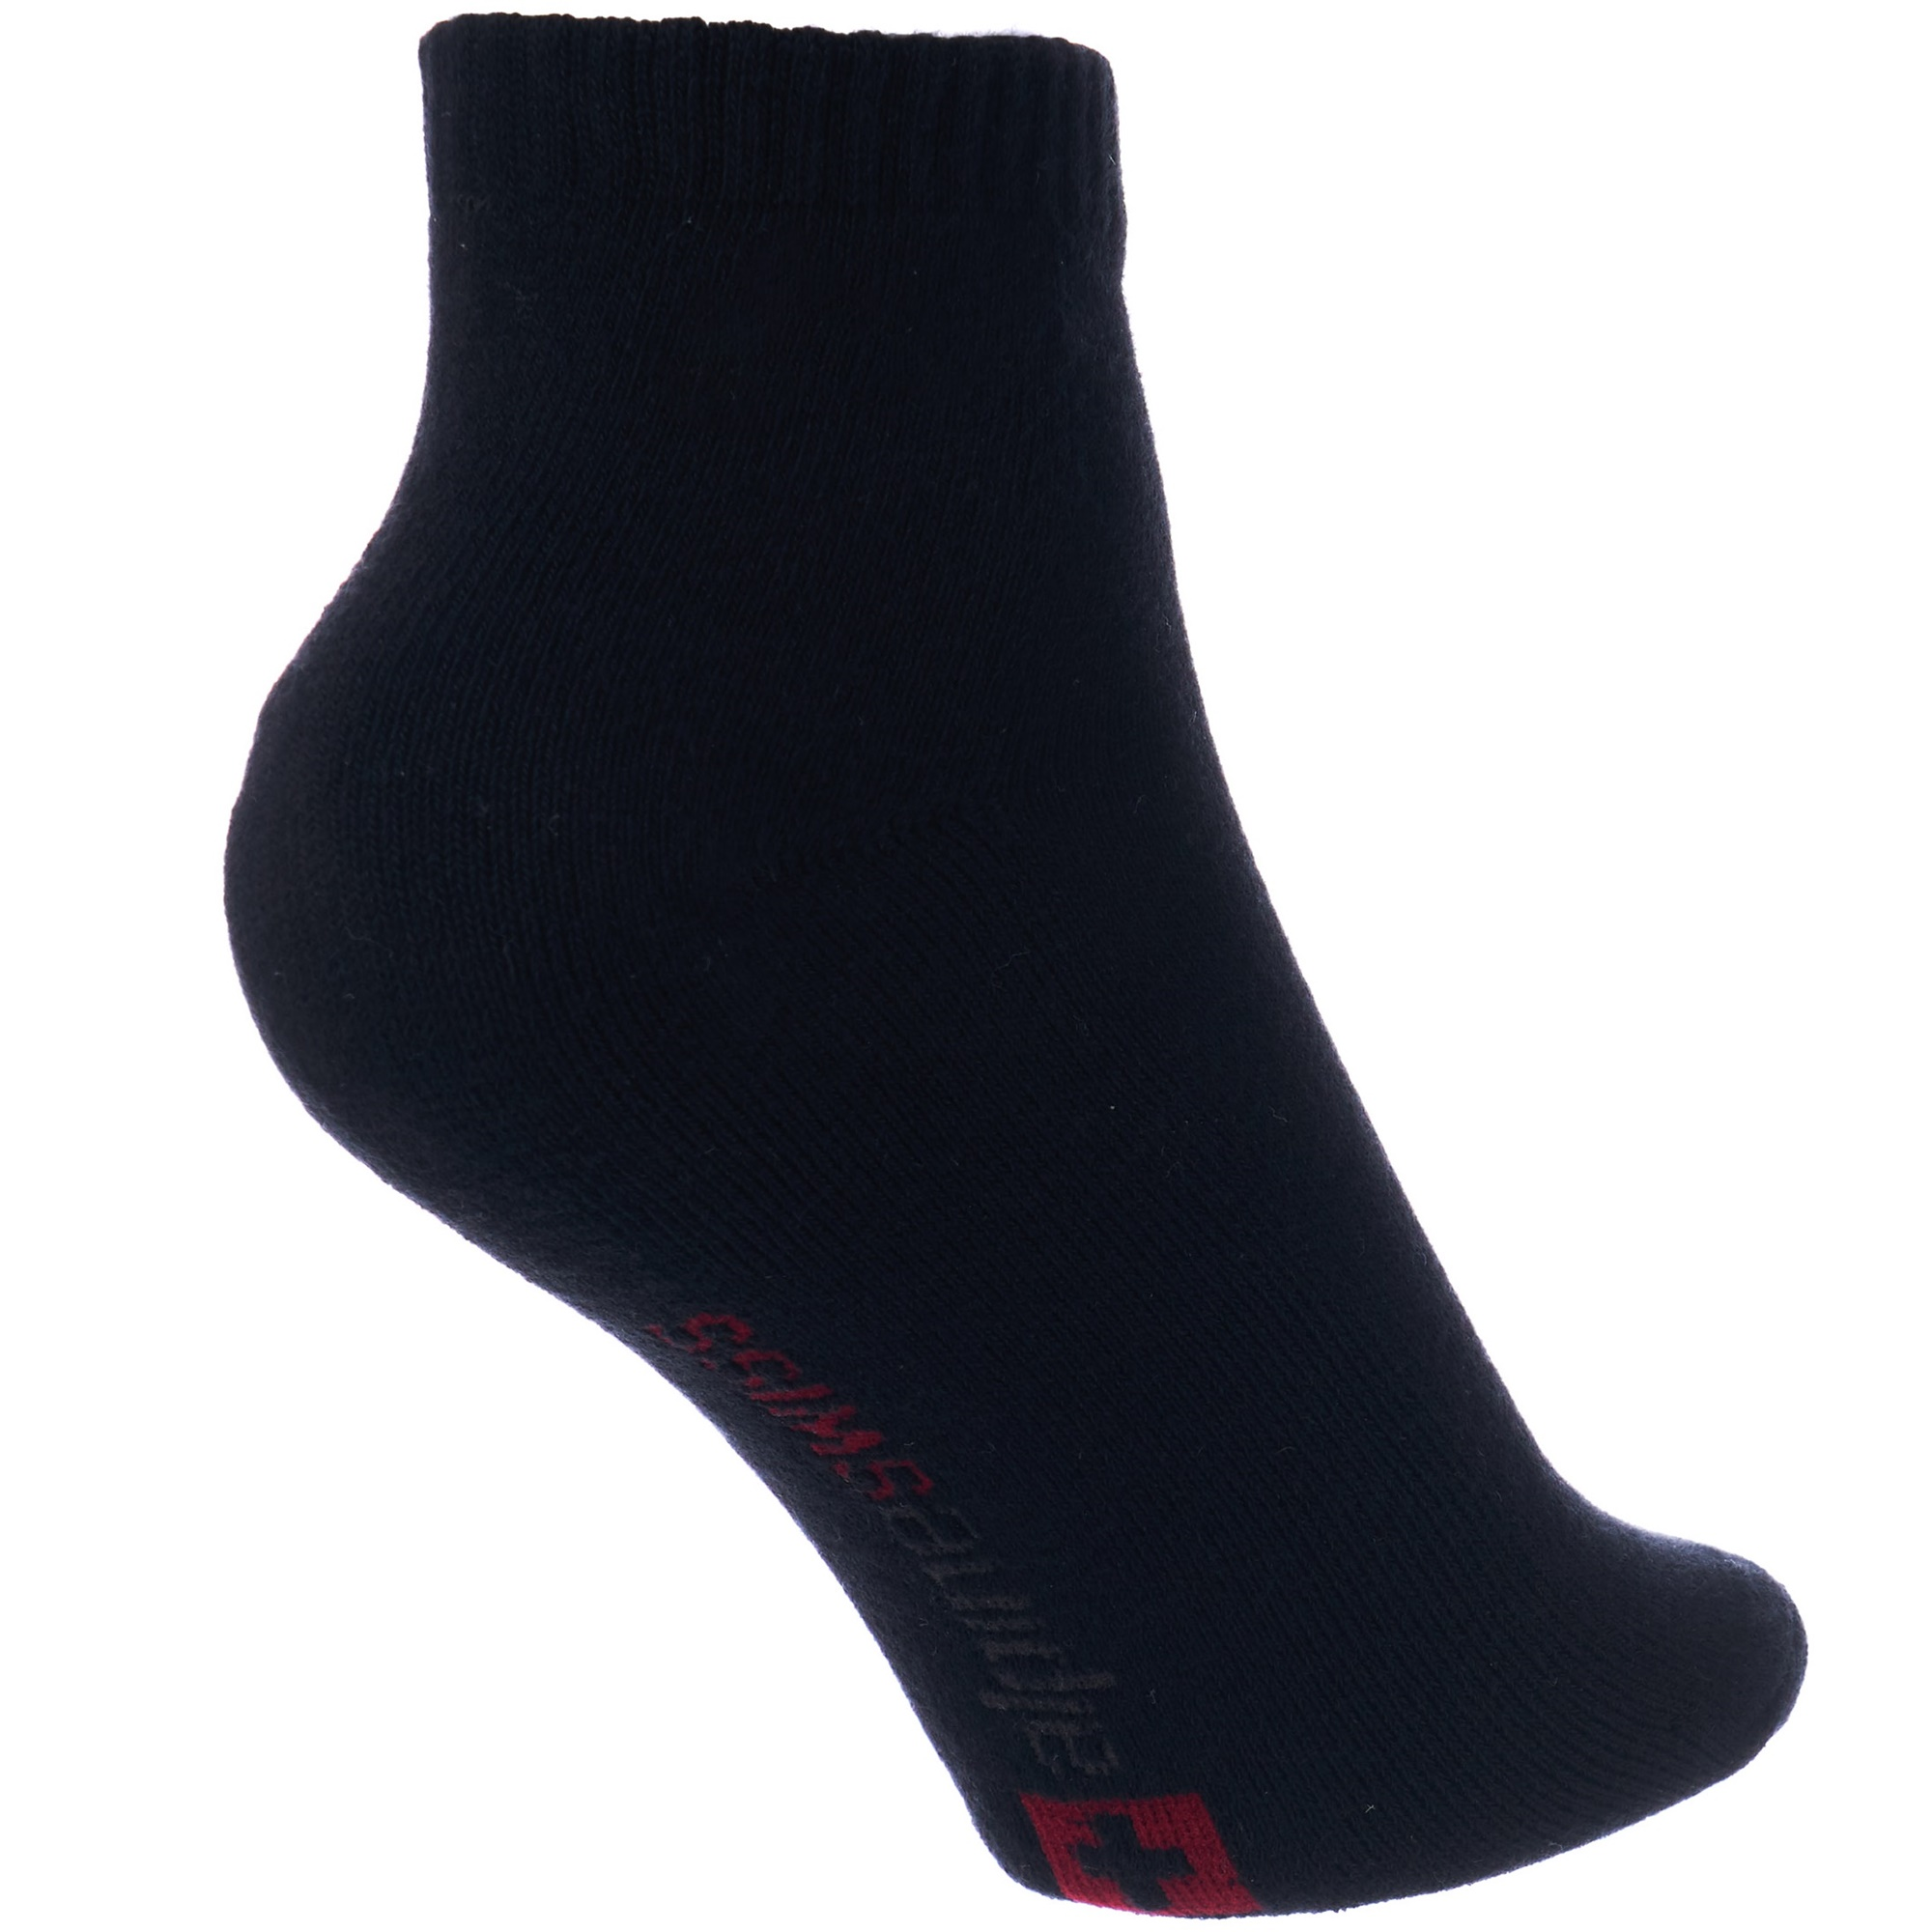 Alpine-Swiss-Mens-8-Pack-Ankle-Socks-Low-Cut-Cotton-Athletic-Sock-Shoe-Size-6-12 thumbnail 15